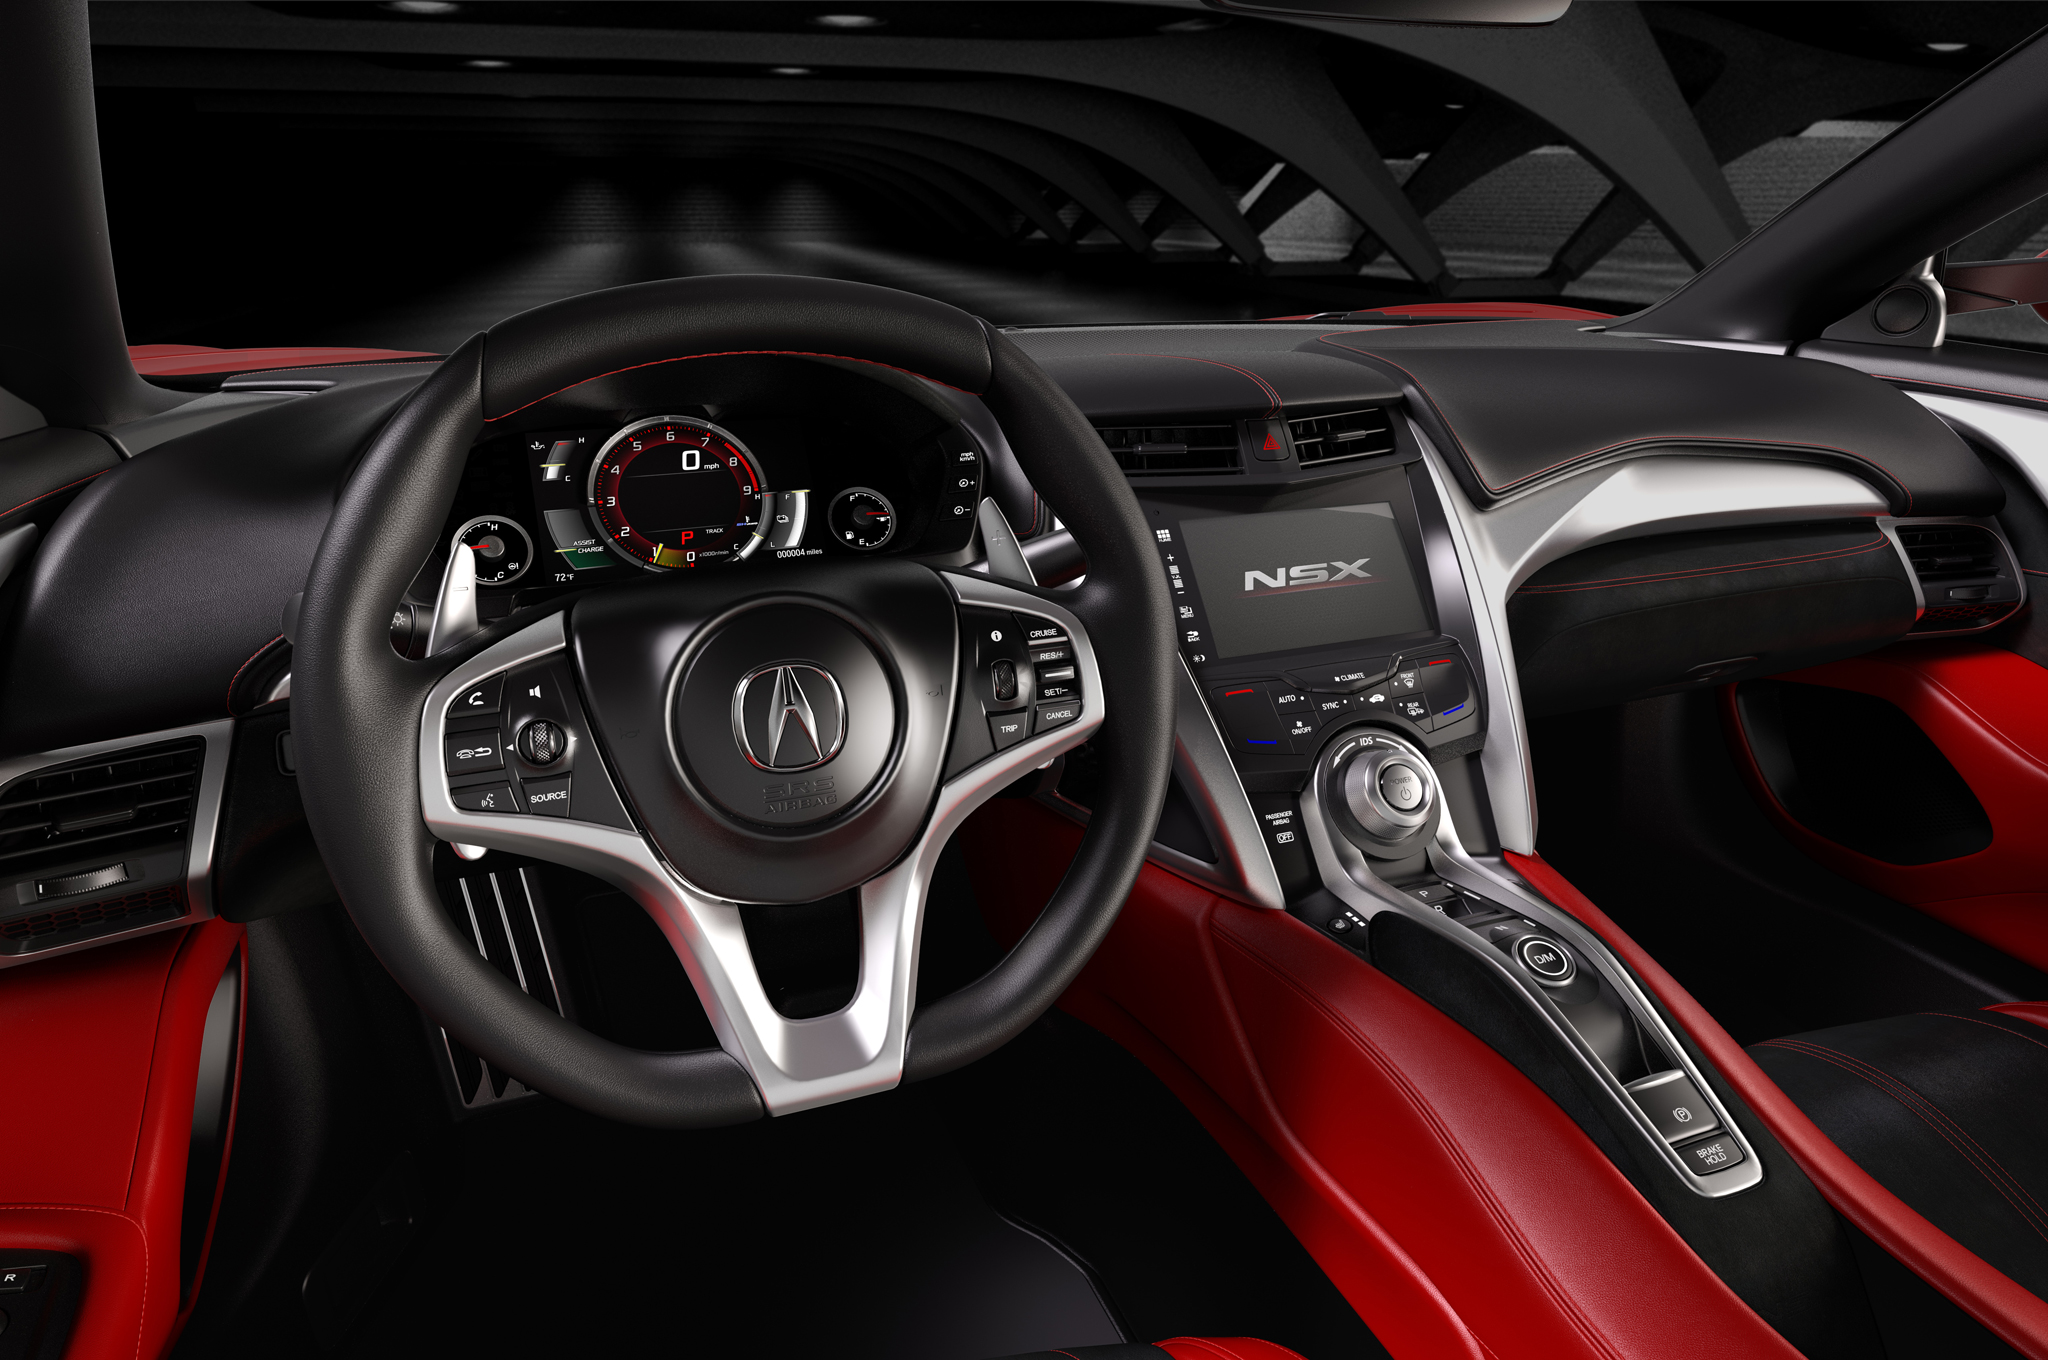 2016 Acura NSX Cockpit and Speedometer